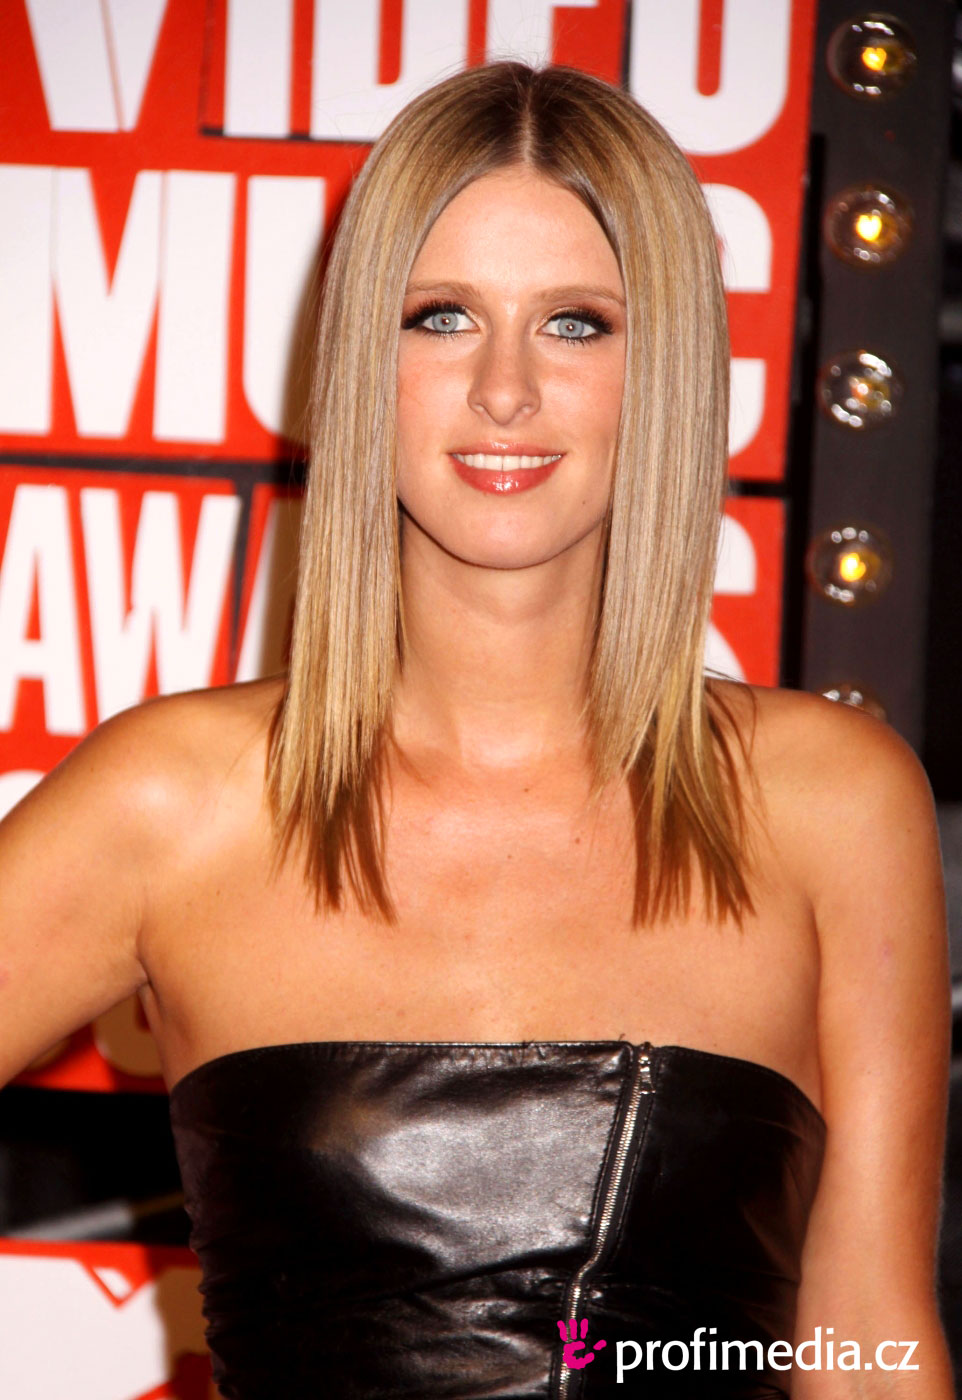 Nicky Hilton earned a  million dollar salary, leaving the net worth at 20 million in 2017